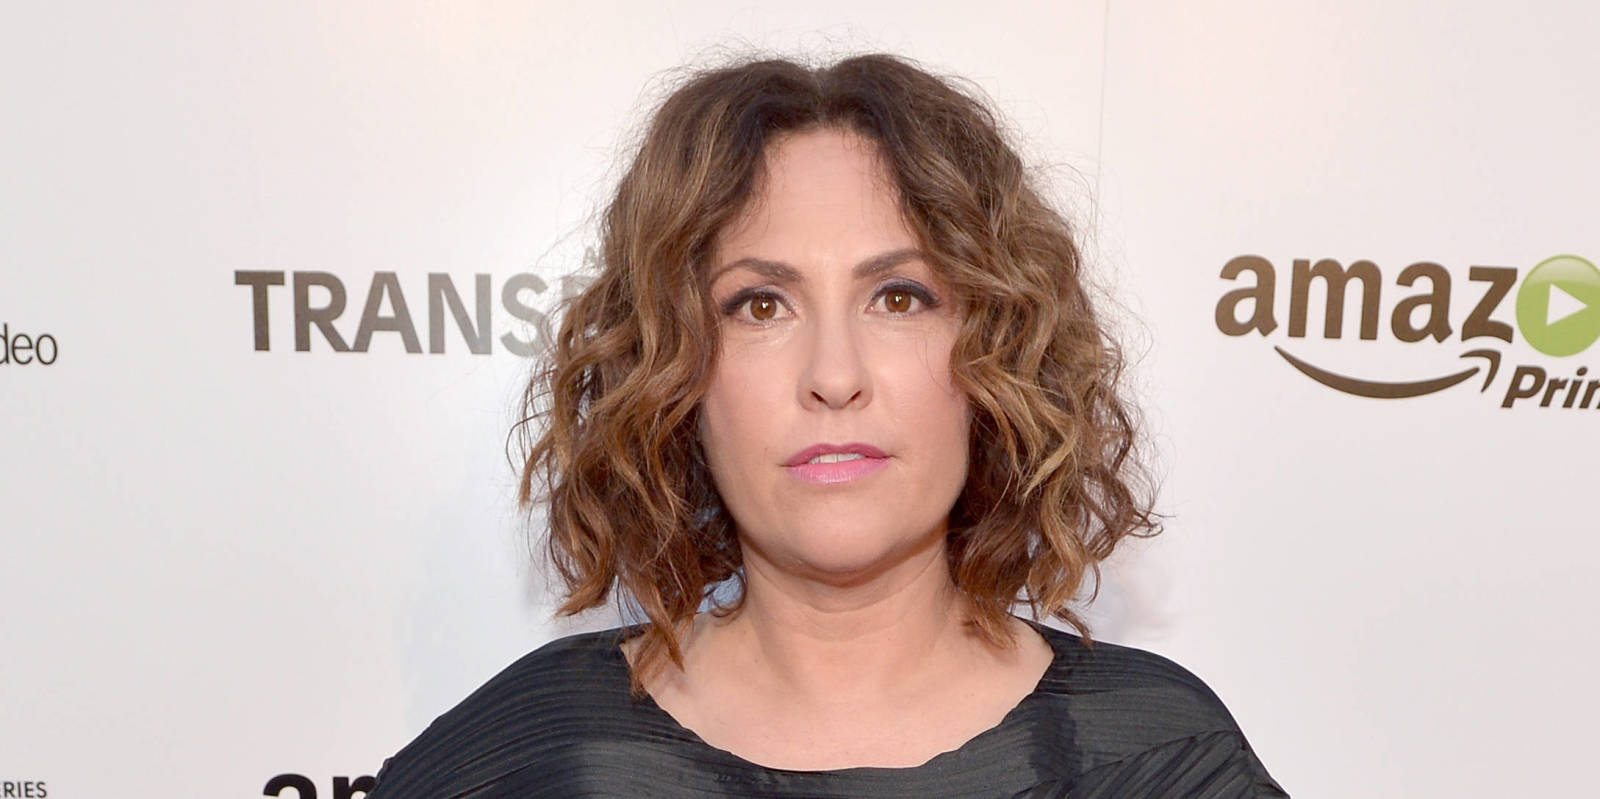 Jill Soloway Directs The Nest